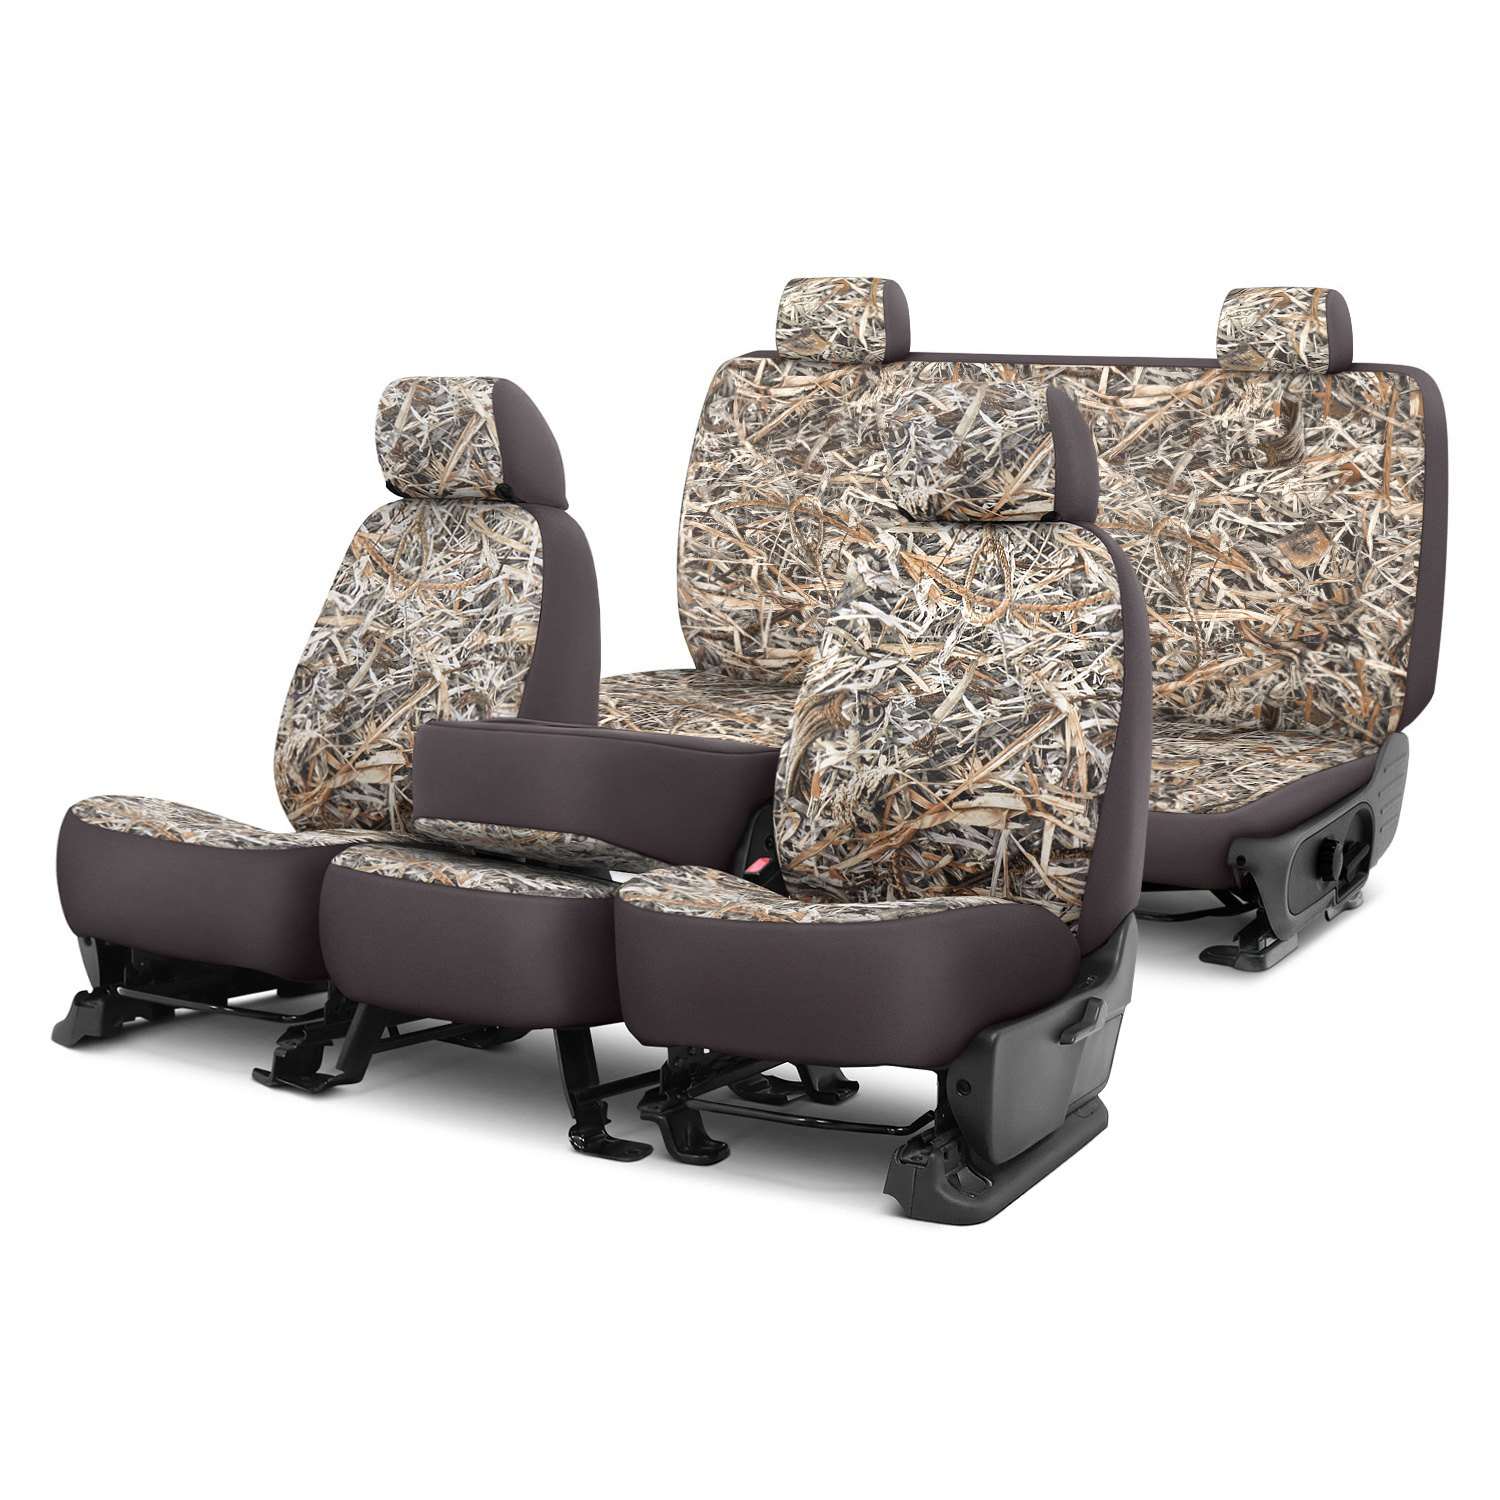 Phenomenal Dash Designs Cowboy Camo Custom Seat Covers Caraccident5 Cool Chair Designs And Ideas Caraccident5Info